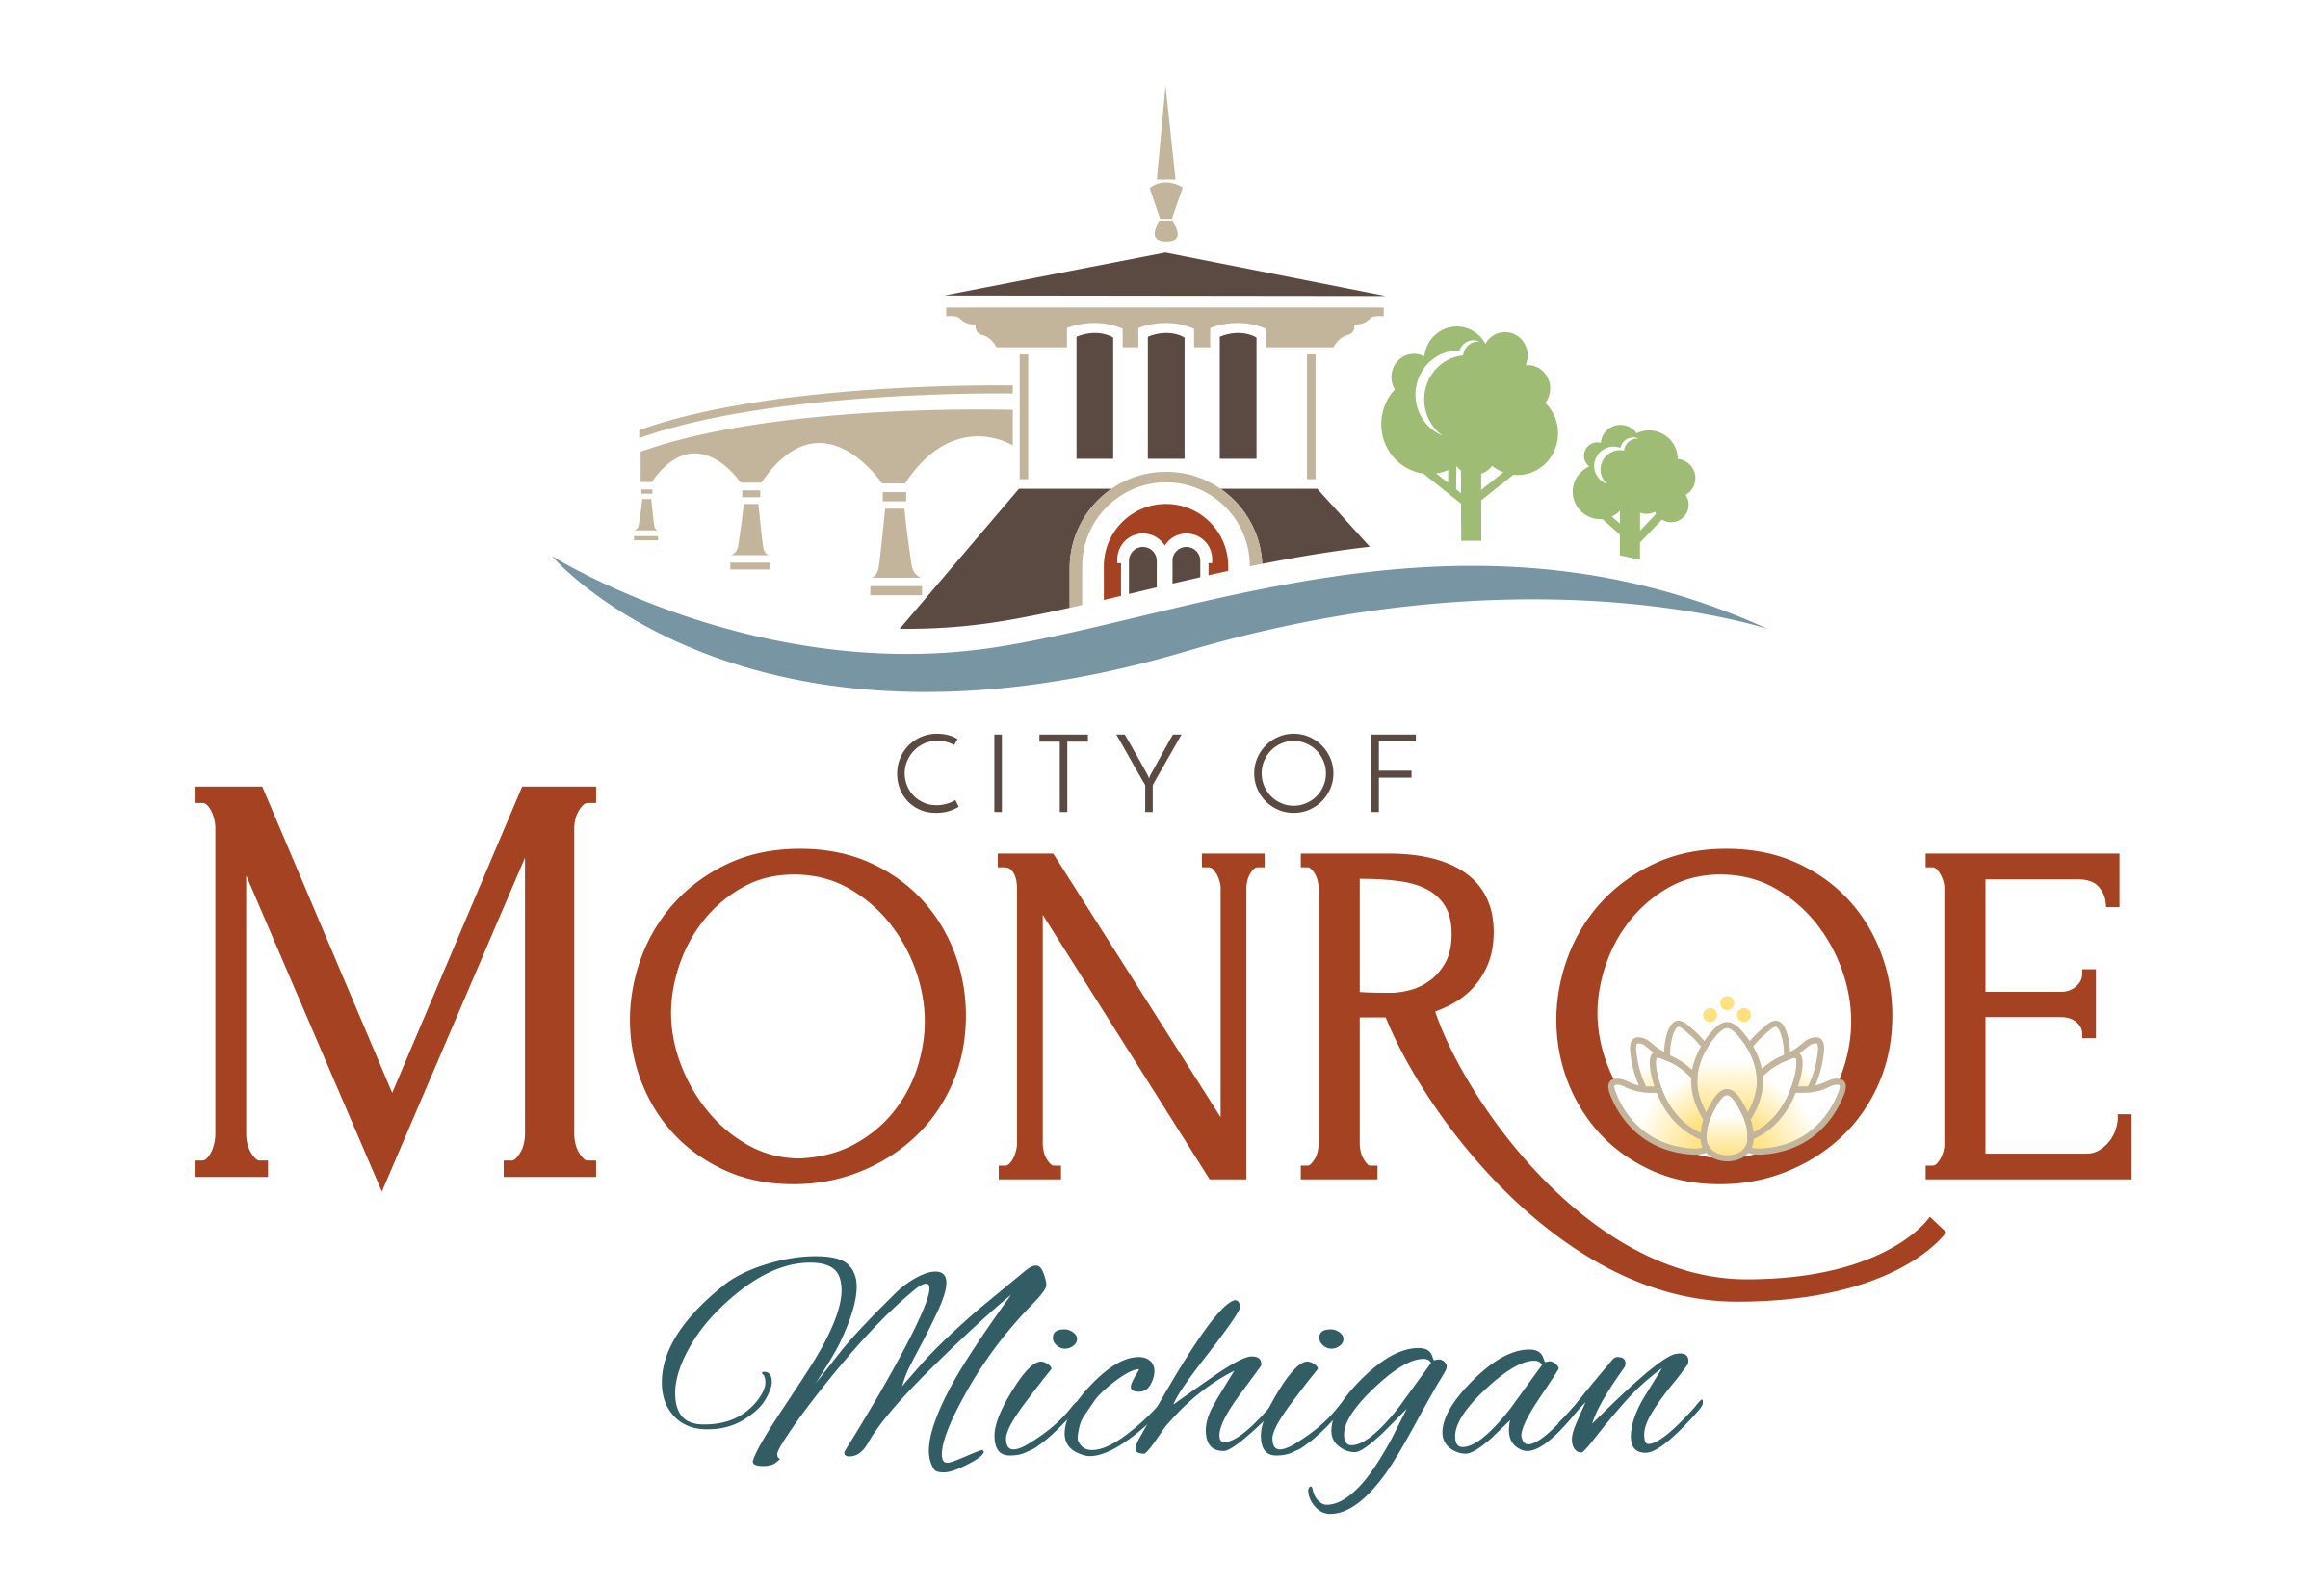 Organization logo of City of Monroe